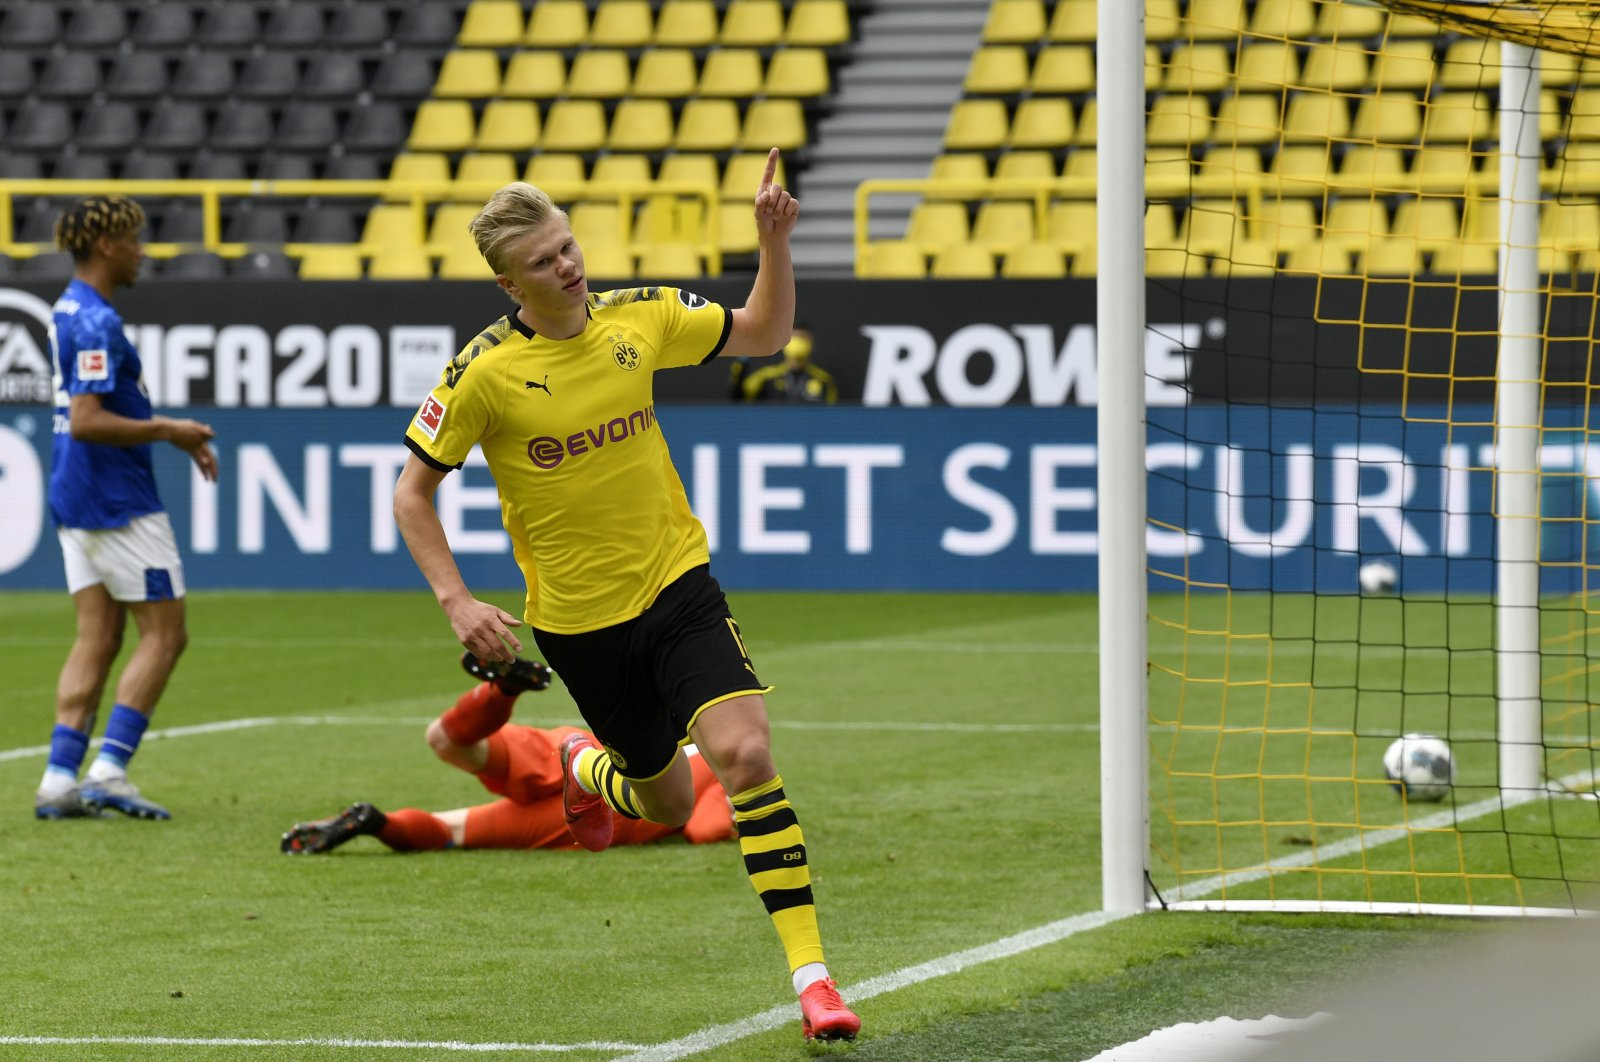 Dortmund's Erling Braut Haaland celebrates after scoring a goal during a Bundesliga match against Schalke 04, Dortmund, Germany, May 16, 2020. (EPA Photo)